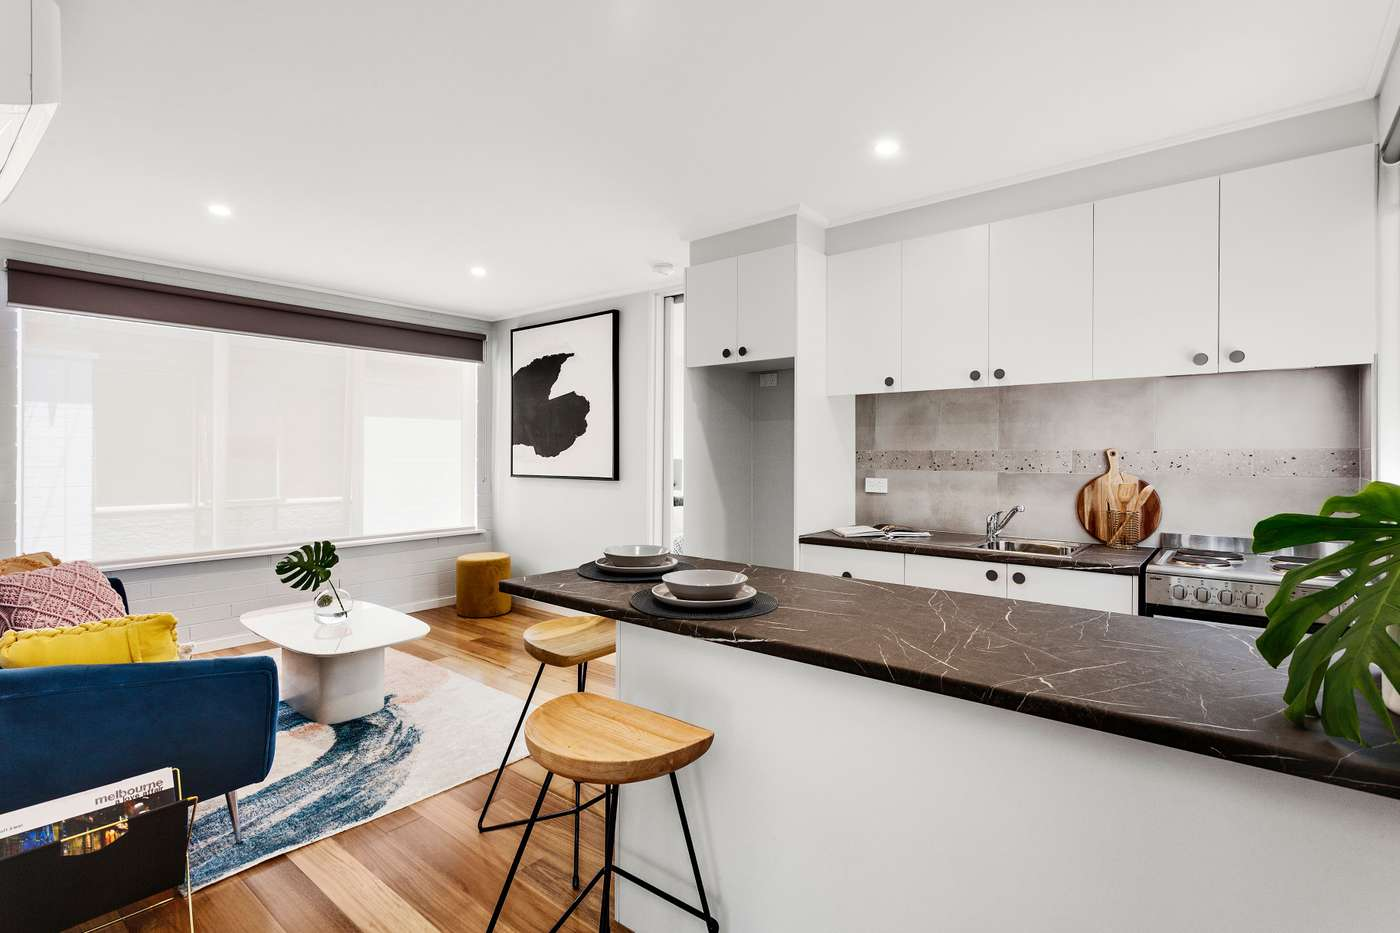 Main view of Homely apartment listing, 12/24-26 Park Crescent, Caulfield North, VIC 3161